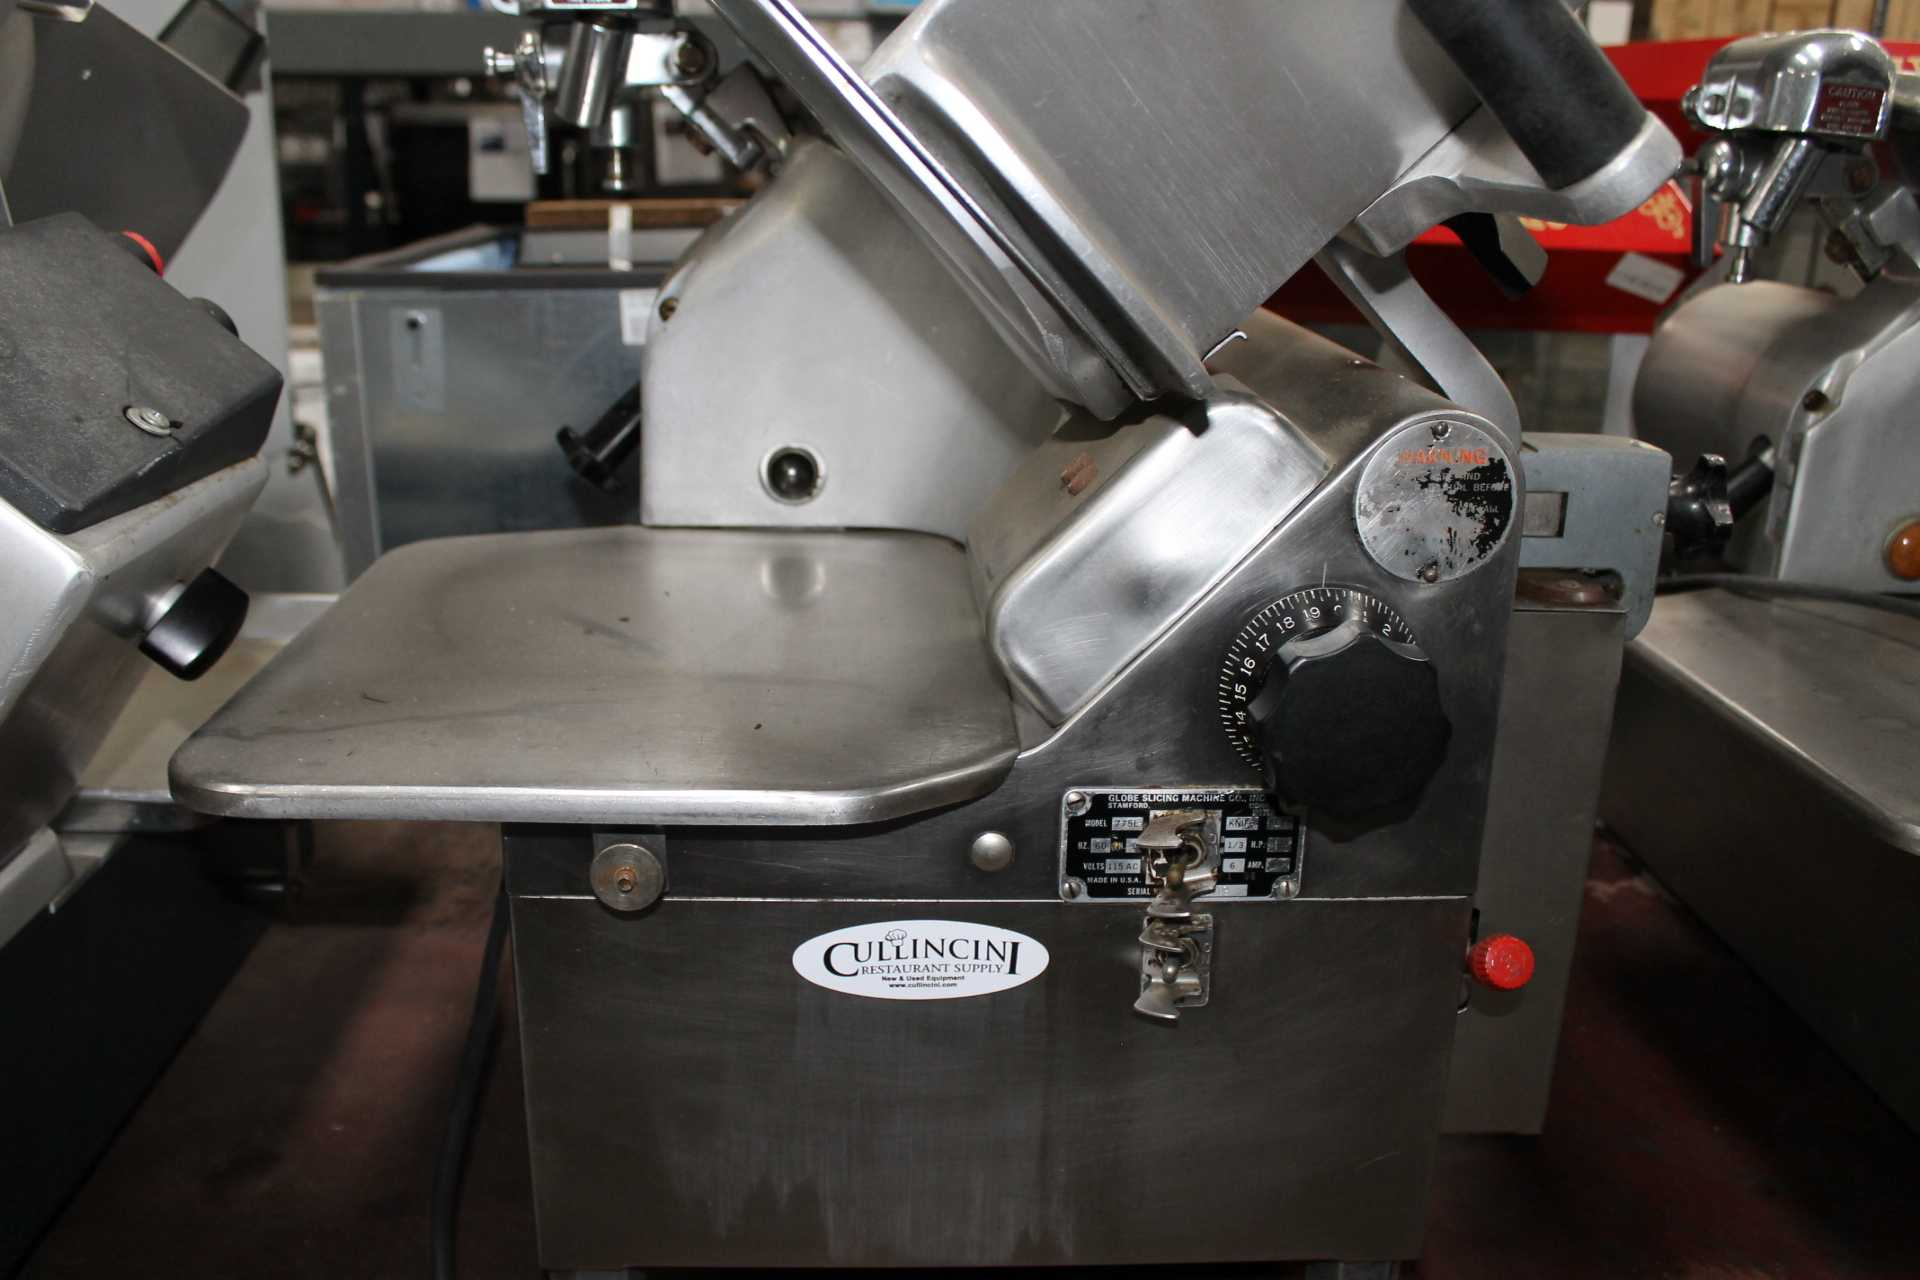 Used Meat Slicers